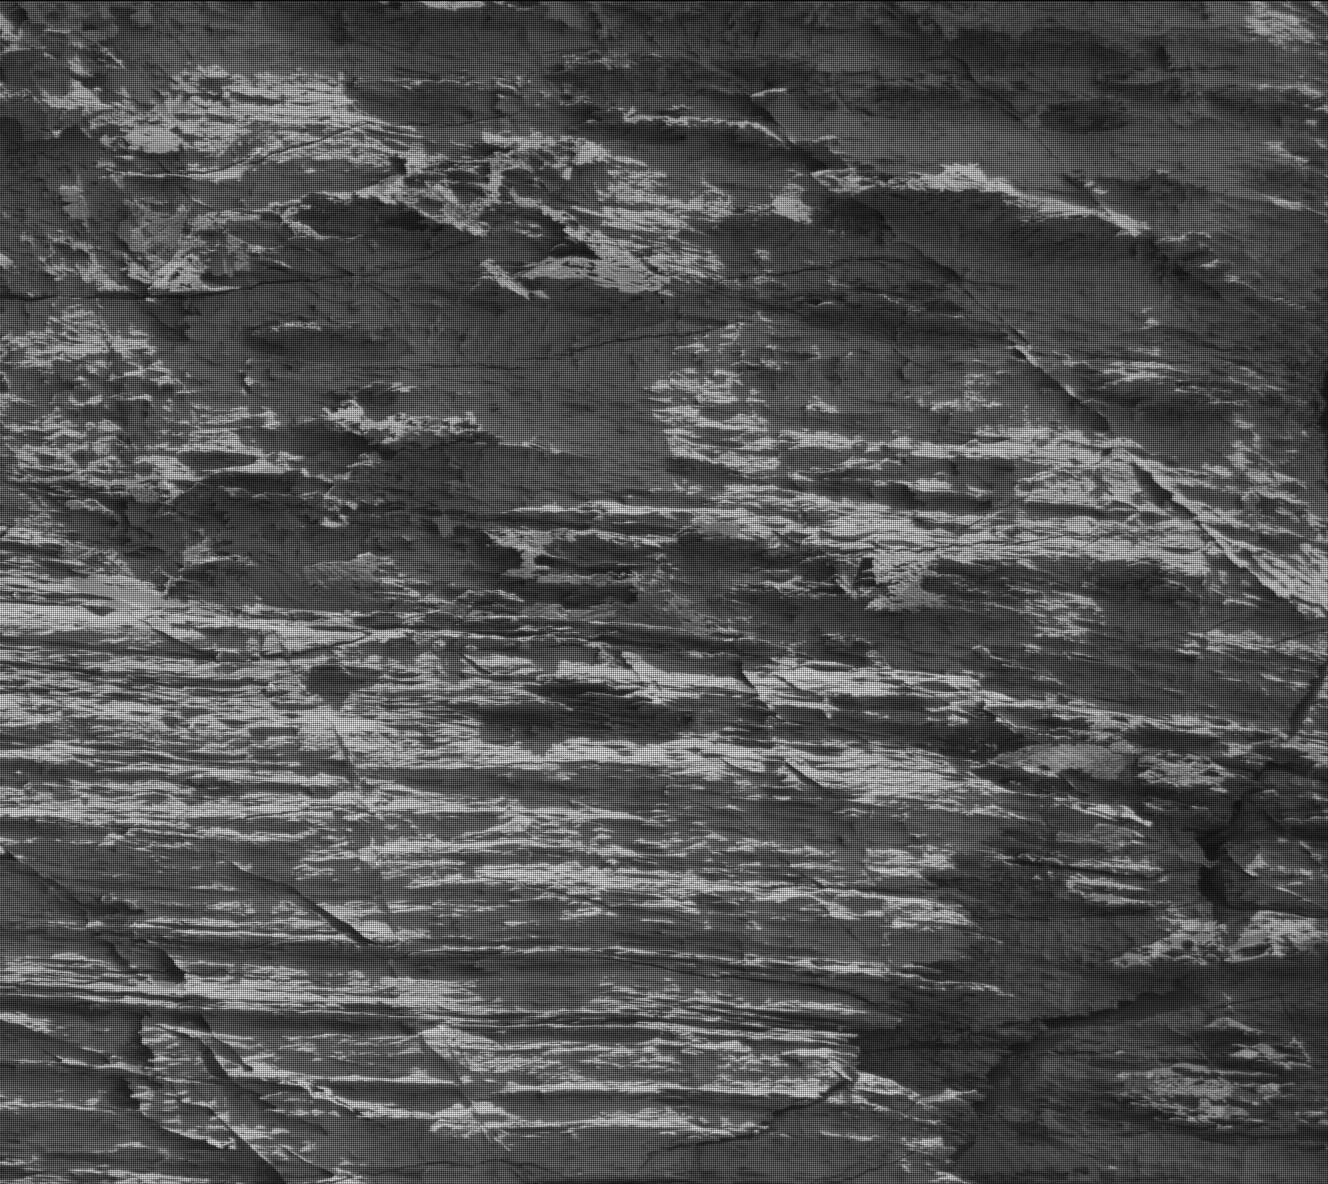 Nasa's Mars rover Curiosity acquired this image using its Mast Camera (Mastcam) on Sol 3061